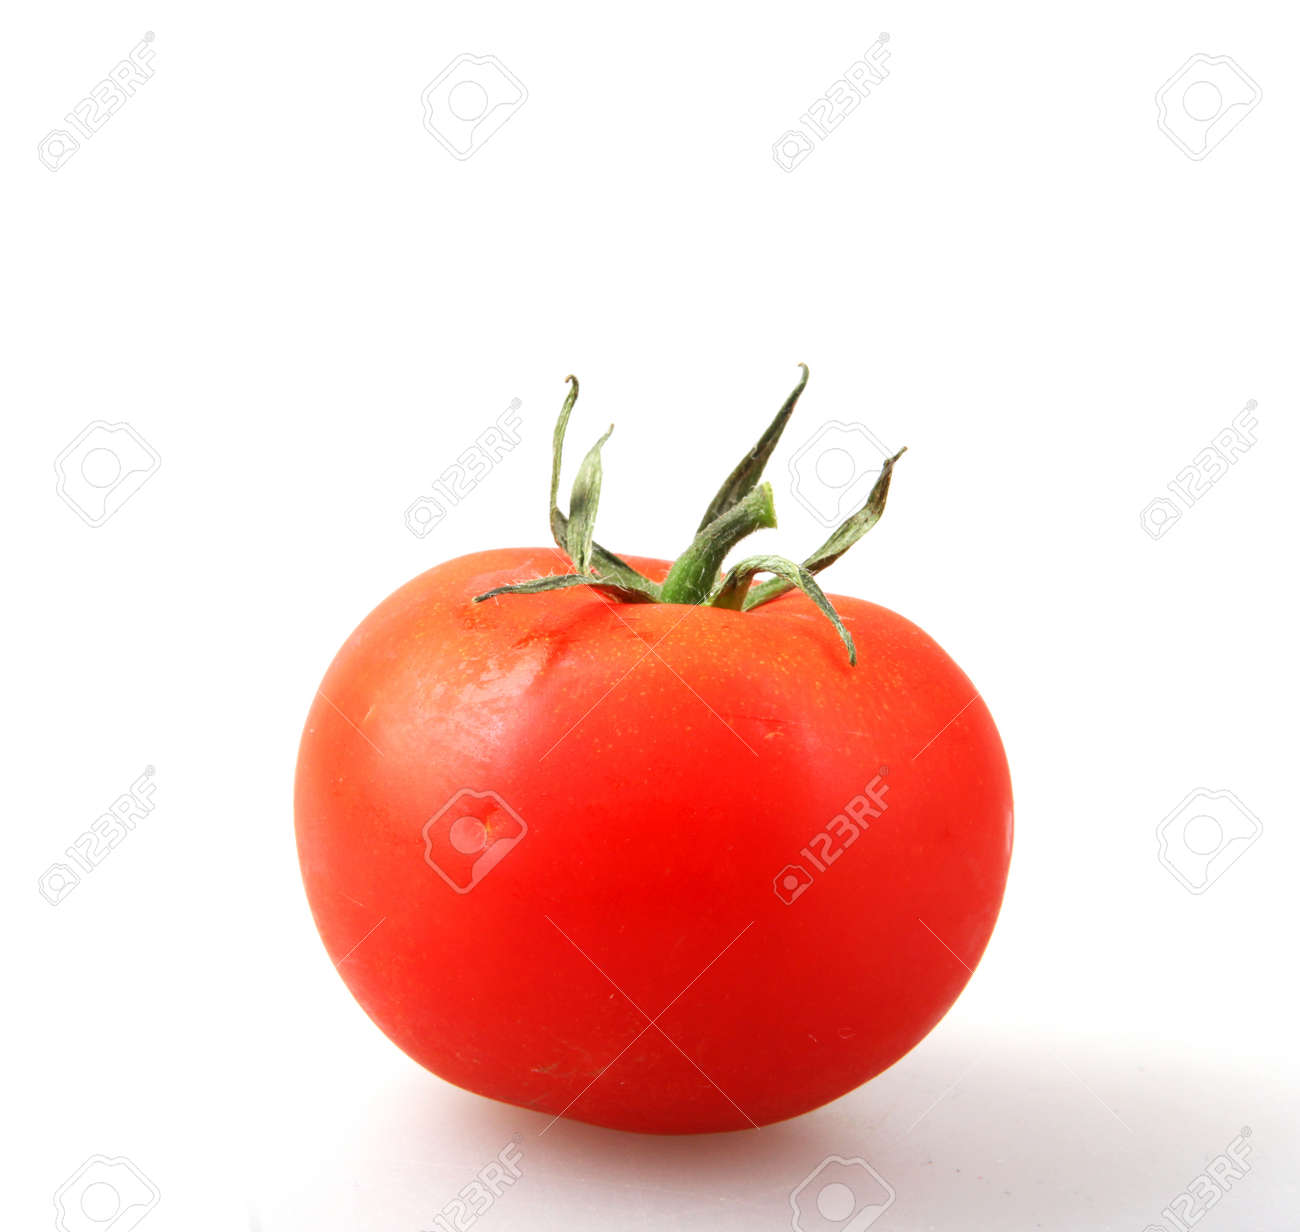 Close-Up Of Red Tomato On White Background - 123725486